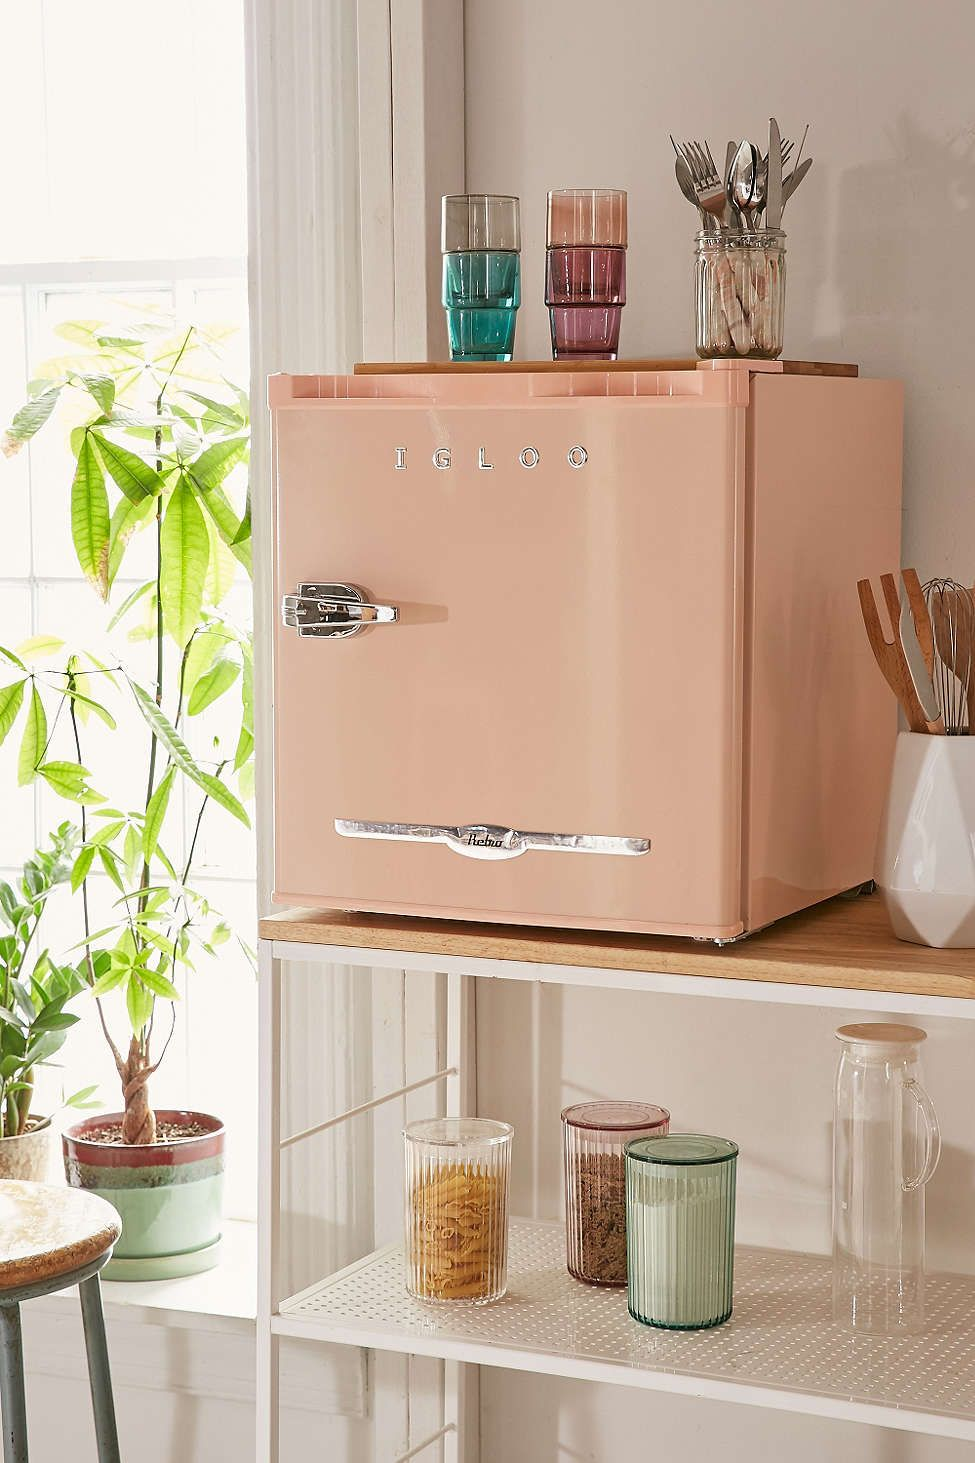 Kuche Top Mount Bar Fridge Mini Refrigerator In 2019 Things I Love Dorm Room Mini